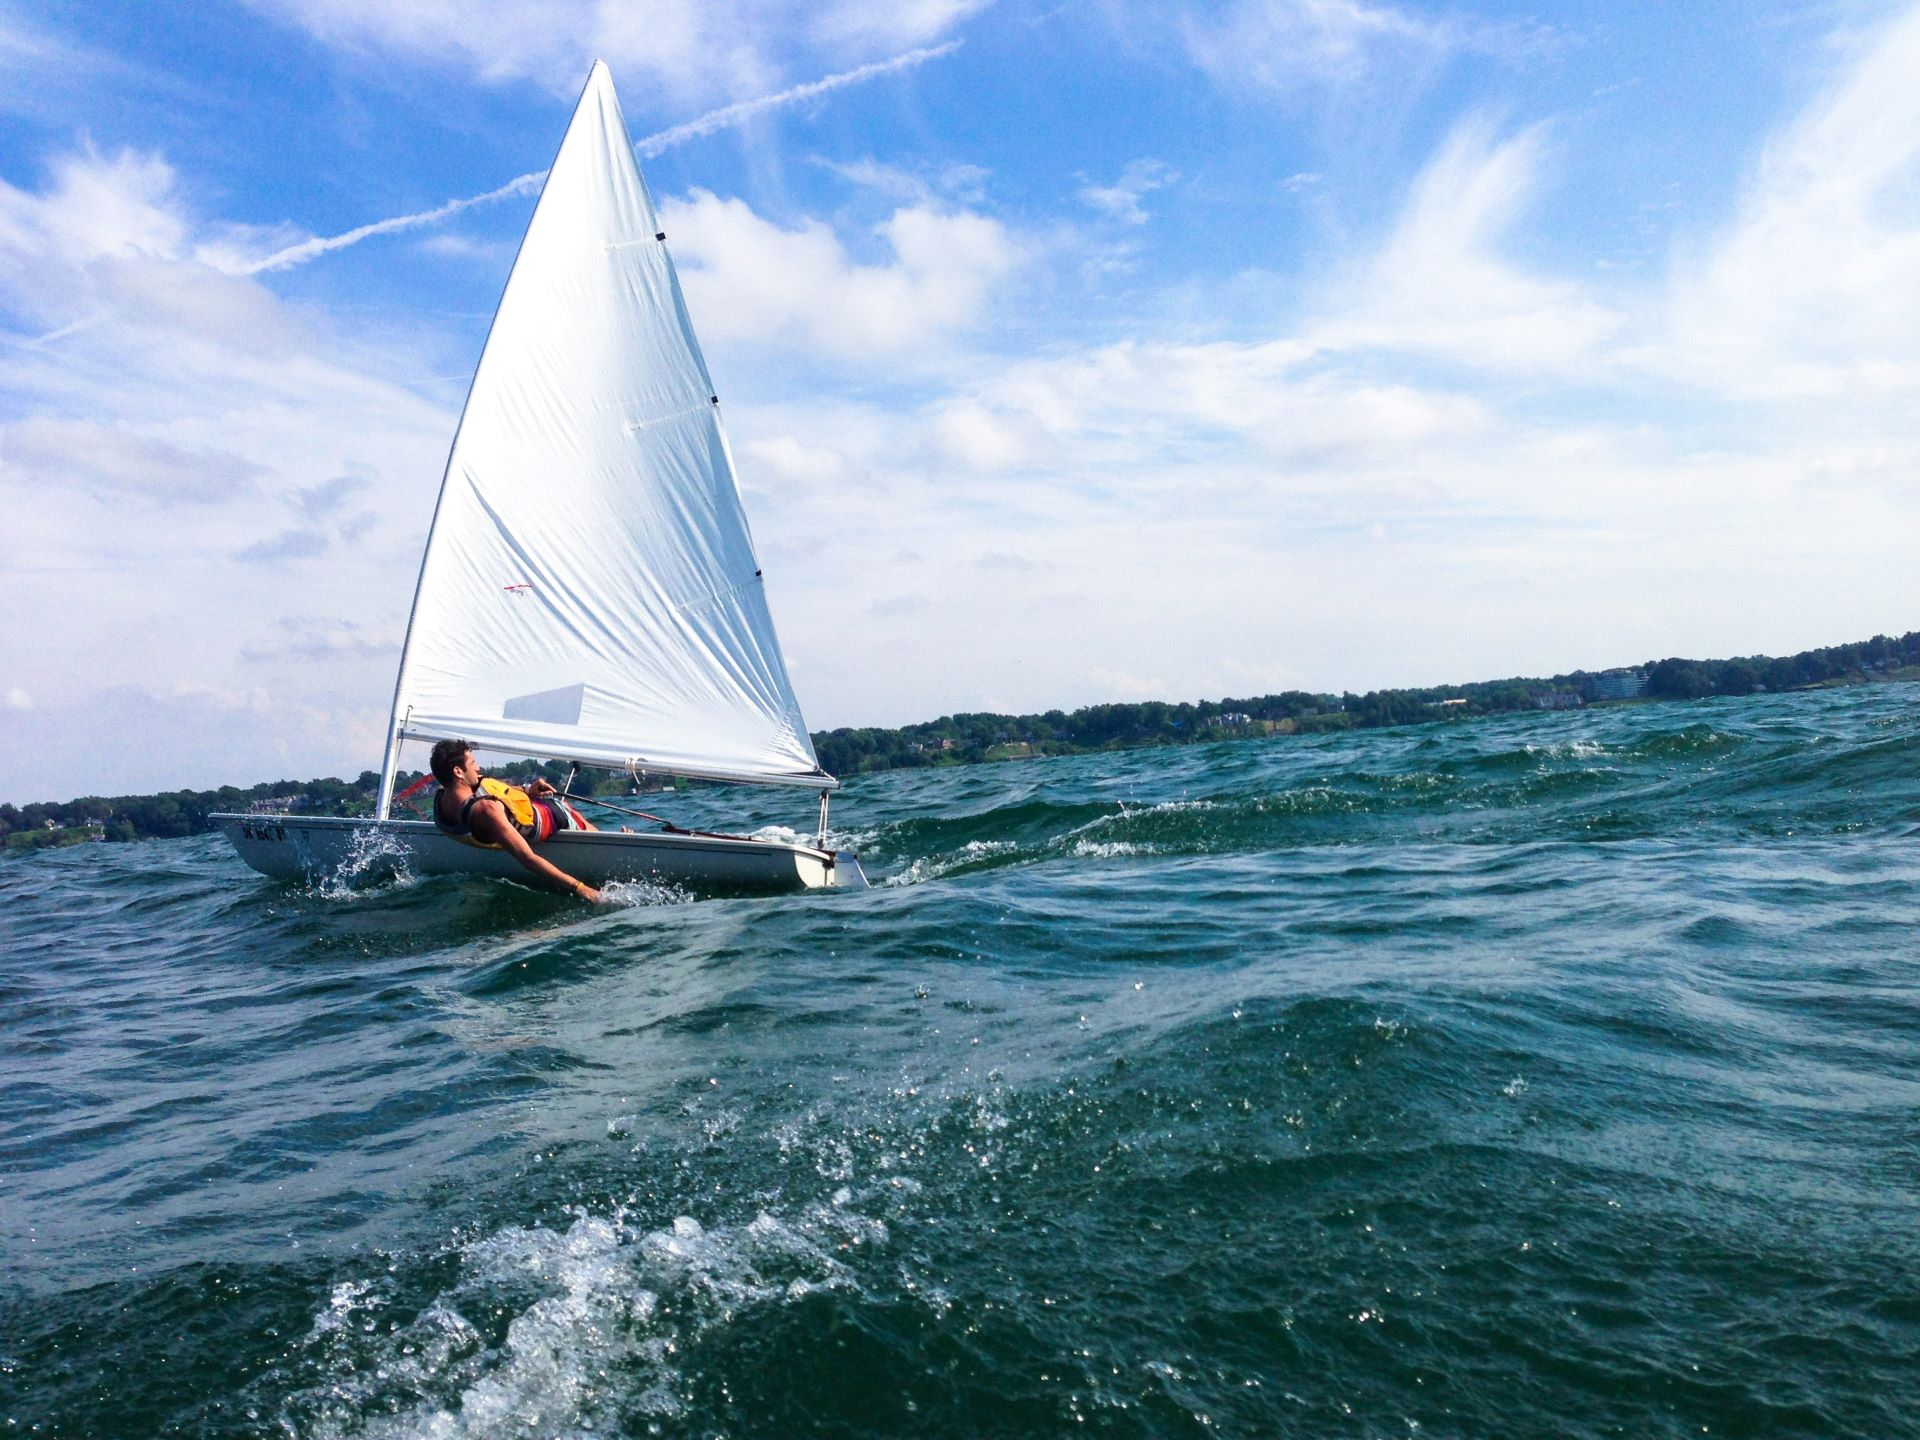 Learning To Sail: An Introduction To Dinghy Sailing